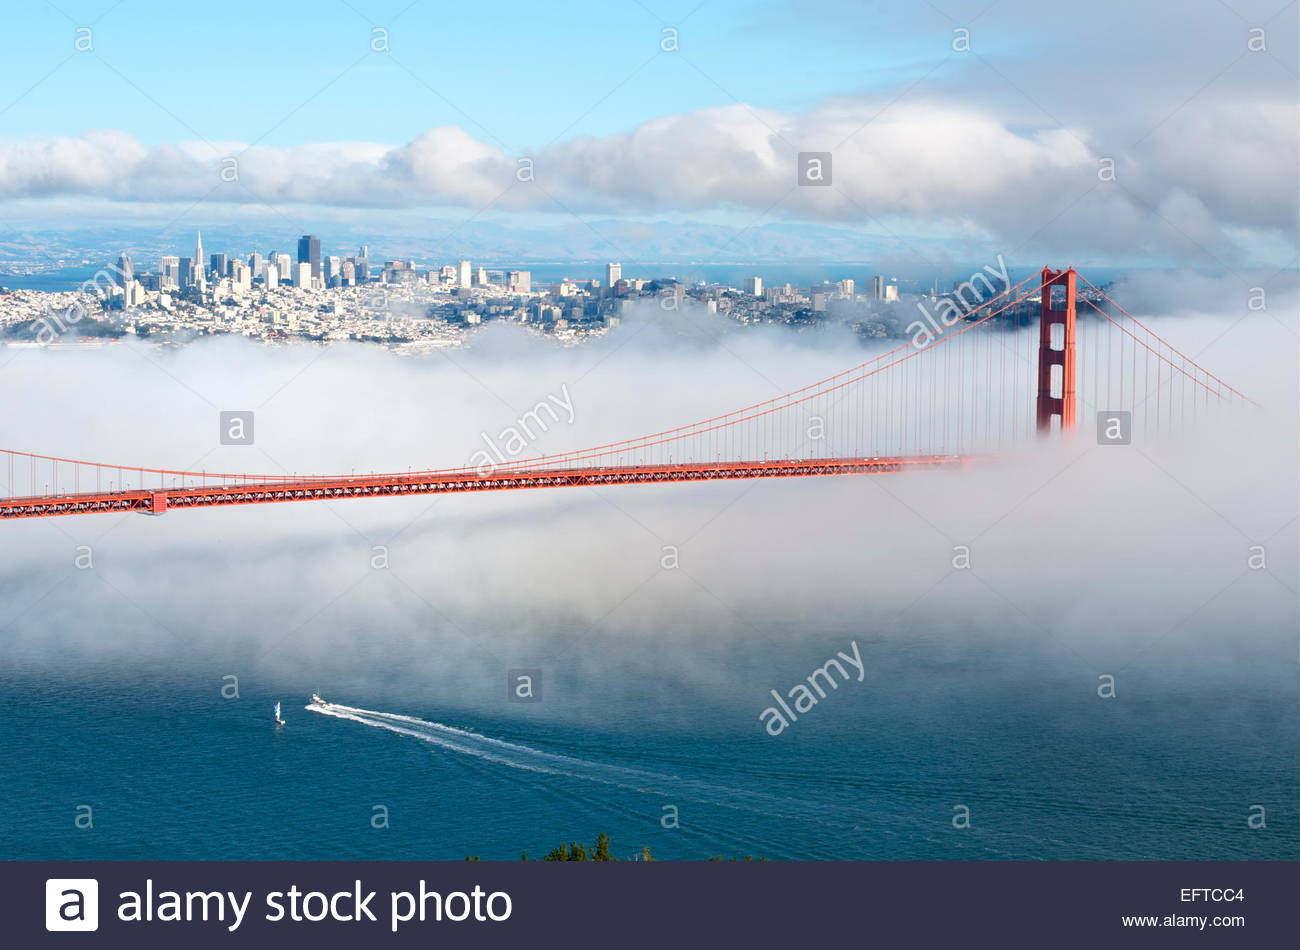 Golden Gate Bridge in thick fog and waterfront cityscape in background - Stock Image